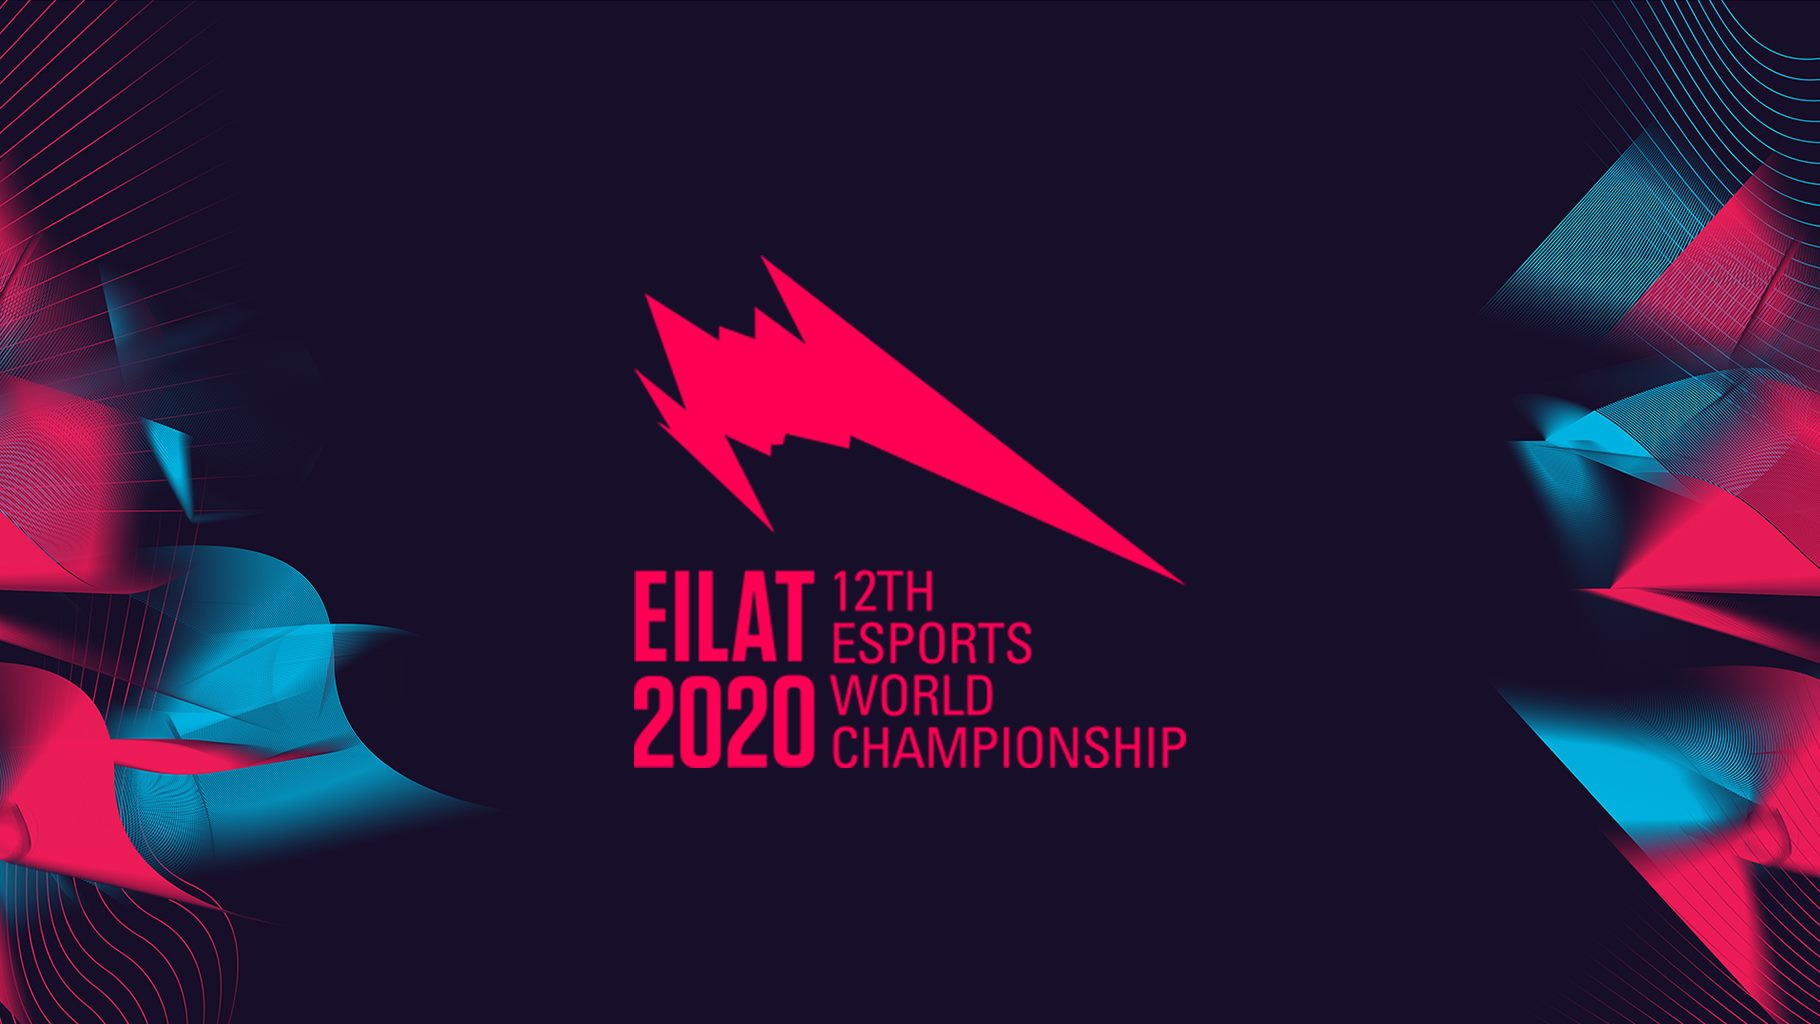 Esports World Championship ends after regional tournaments as COVID-19 concerns cancel finals